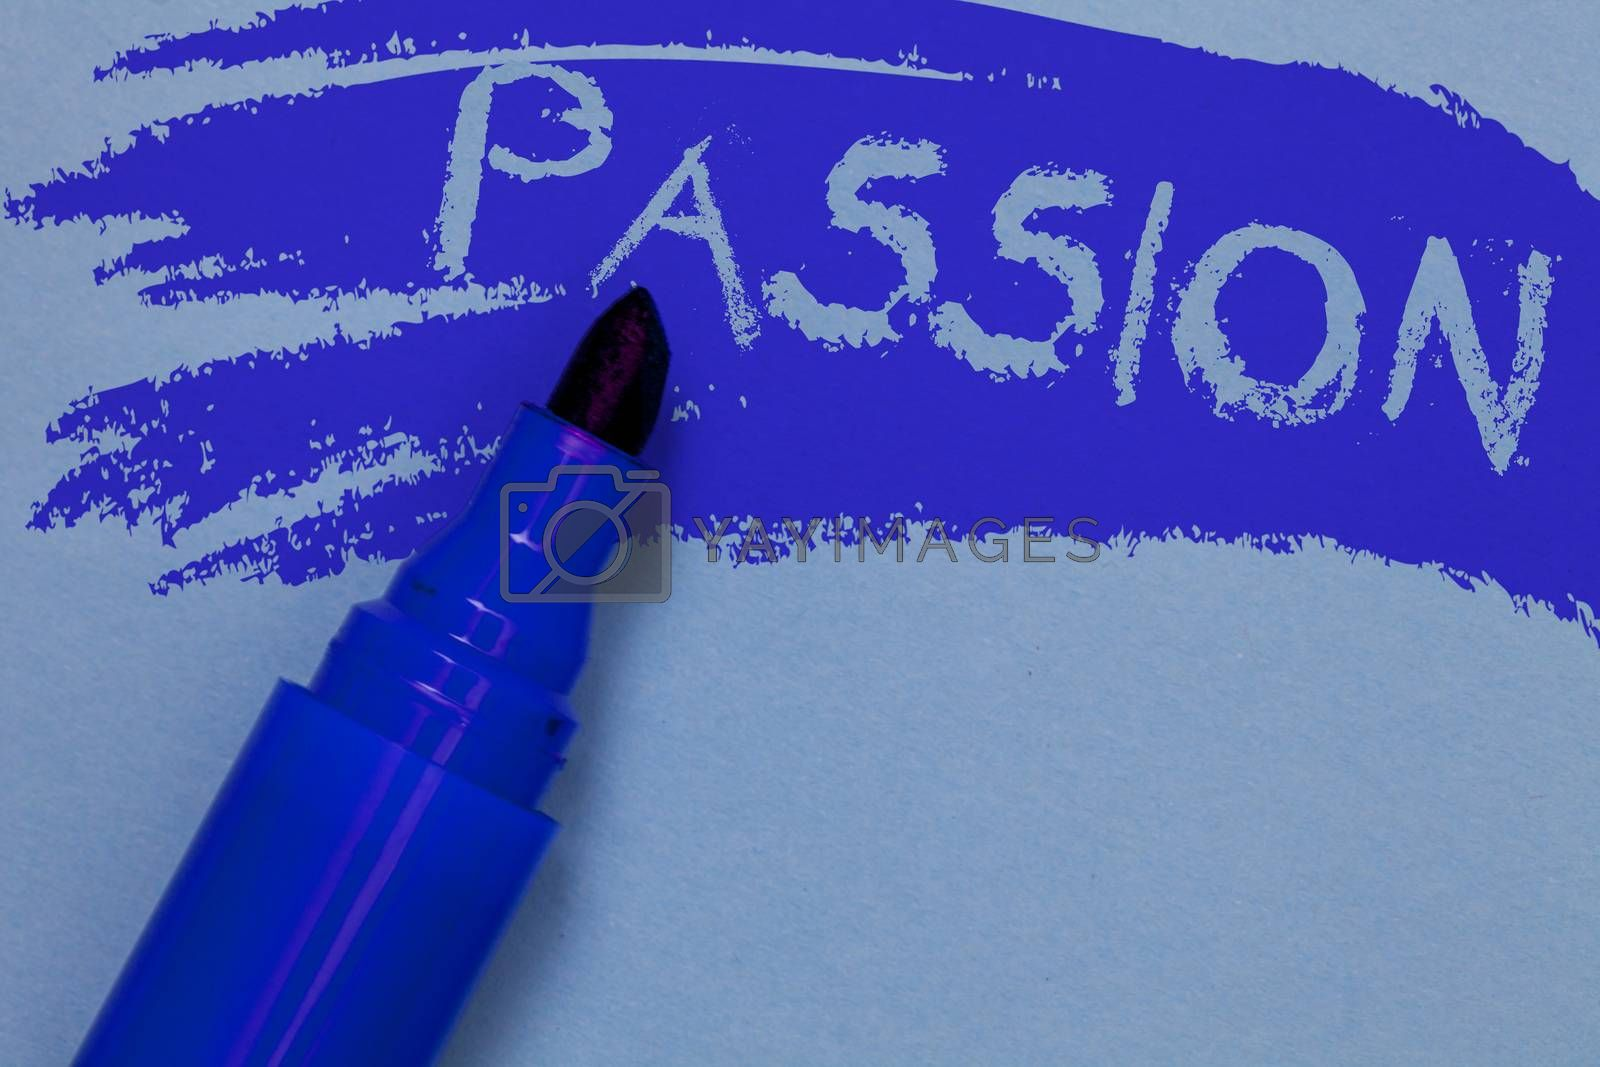 Writing note showing Passion. Business photo showcasing Strong and uncontrollable emotion Powerful feeling Sexual attraction Bold blue marker colouring sketch work type idea text plain background